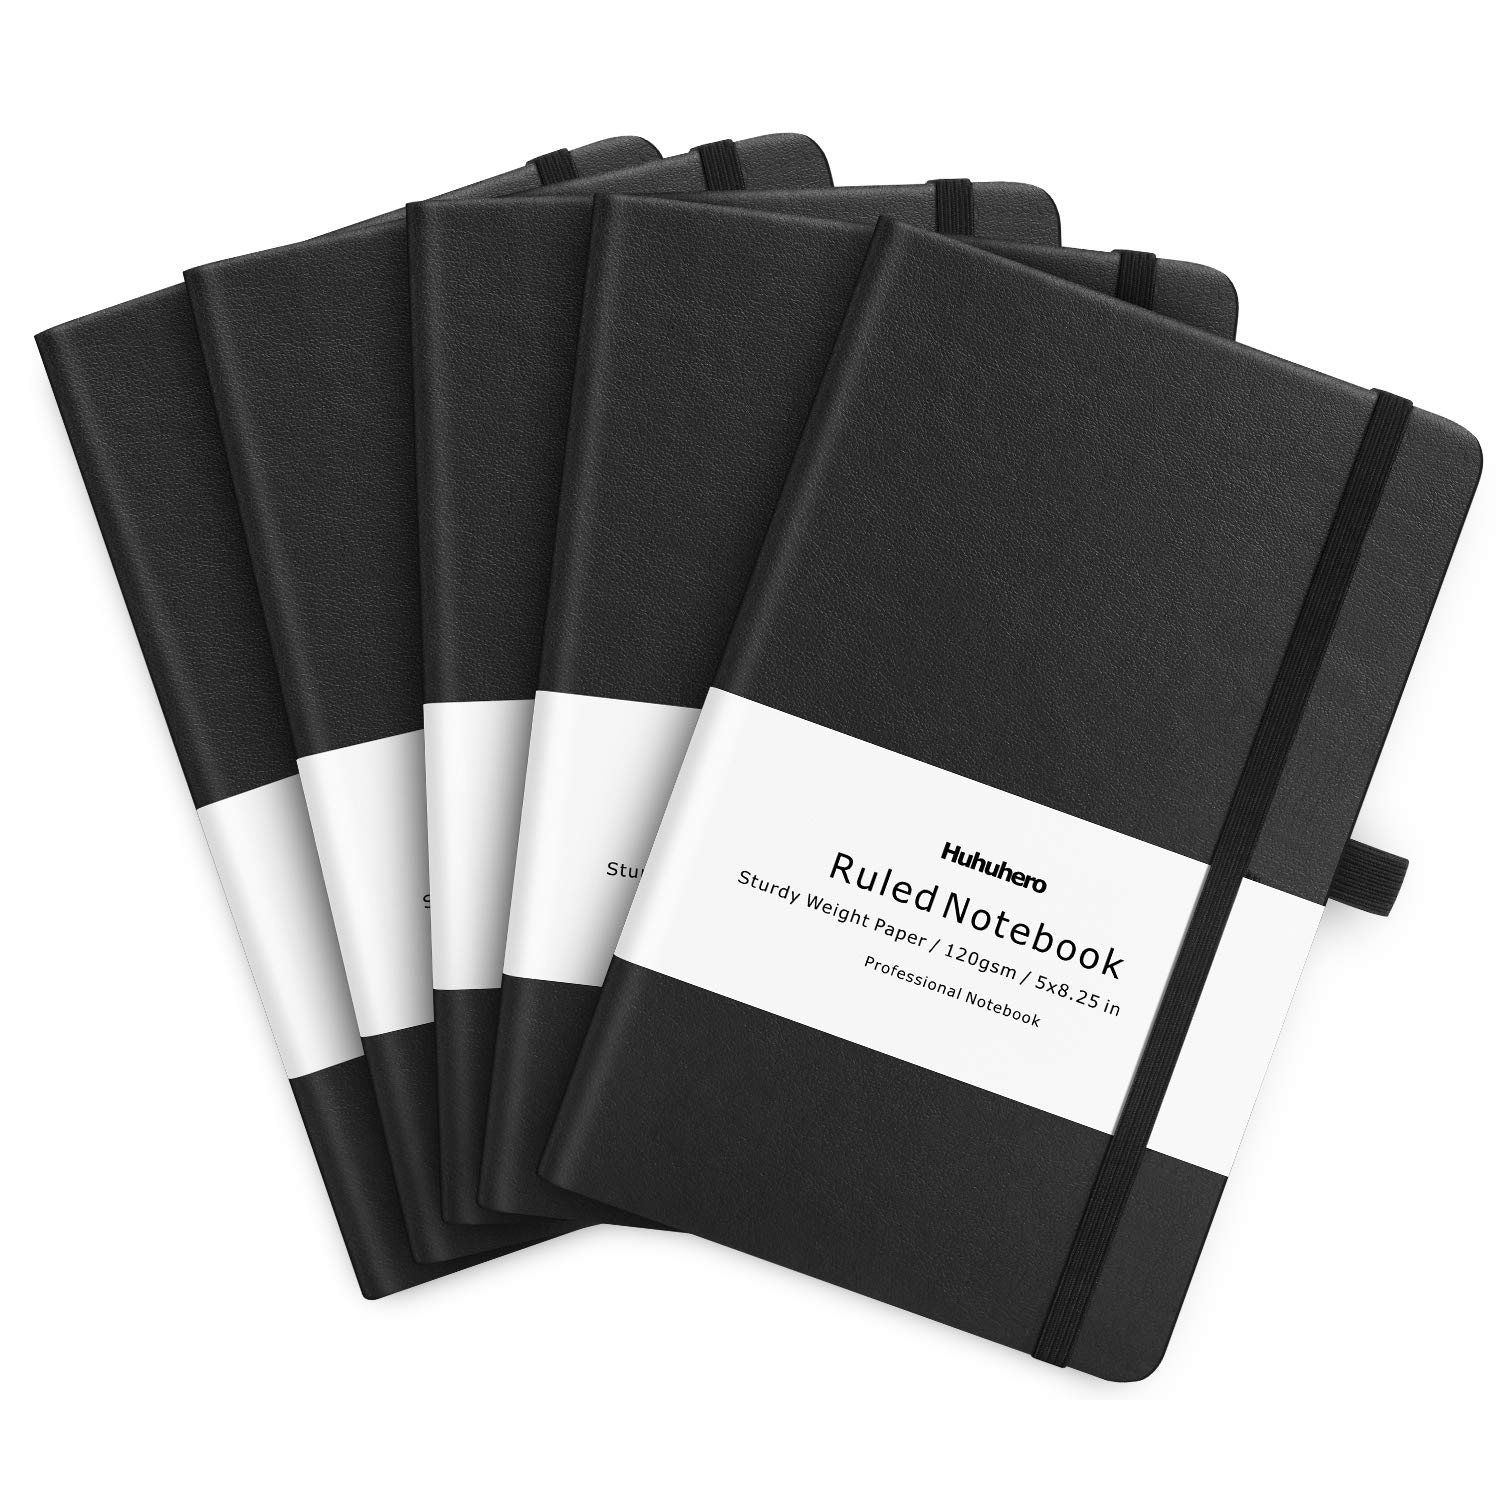 Huhuhero 5 Pack Notebooks Journals, Classic Ruled Notebook, Premium Thick Paper Lined Journal, Black Hardcover Notebook for Office Home School Business Writing Note Taking Journaling, 5''×8.3'' by Huhuhero